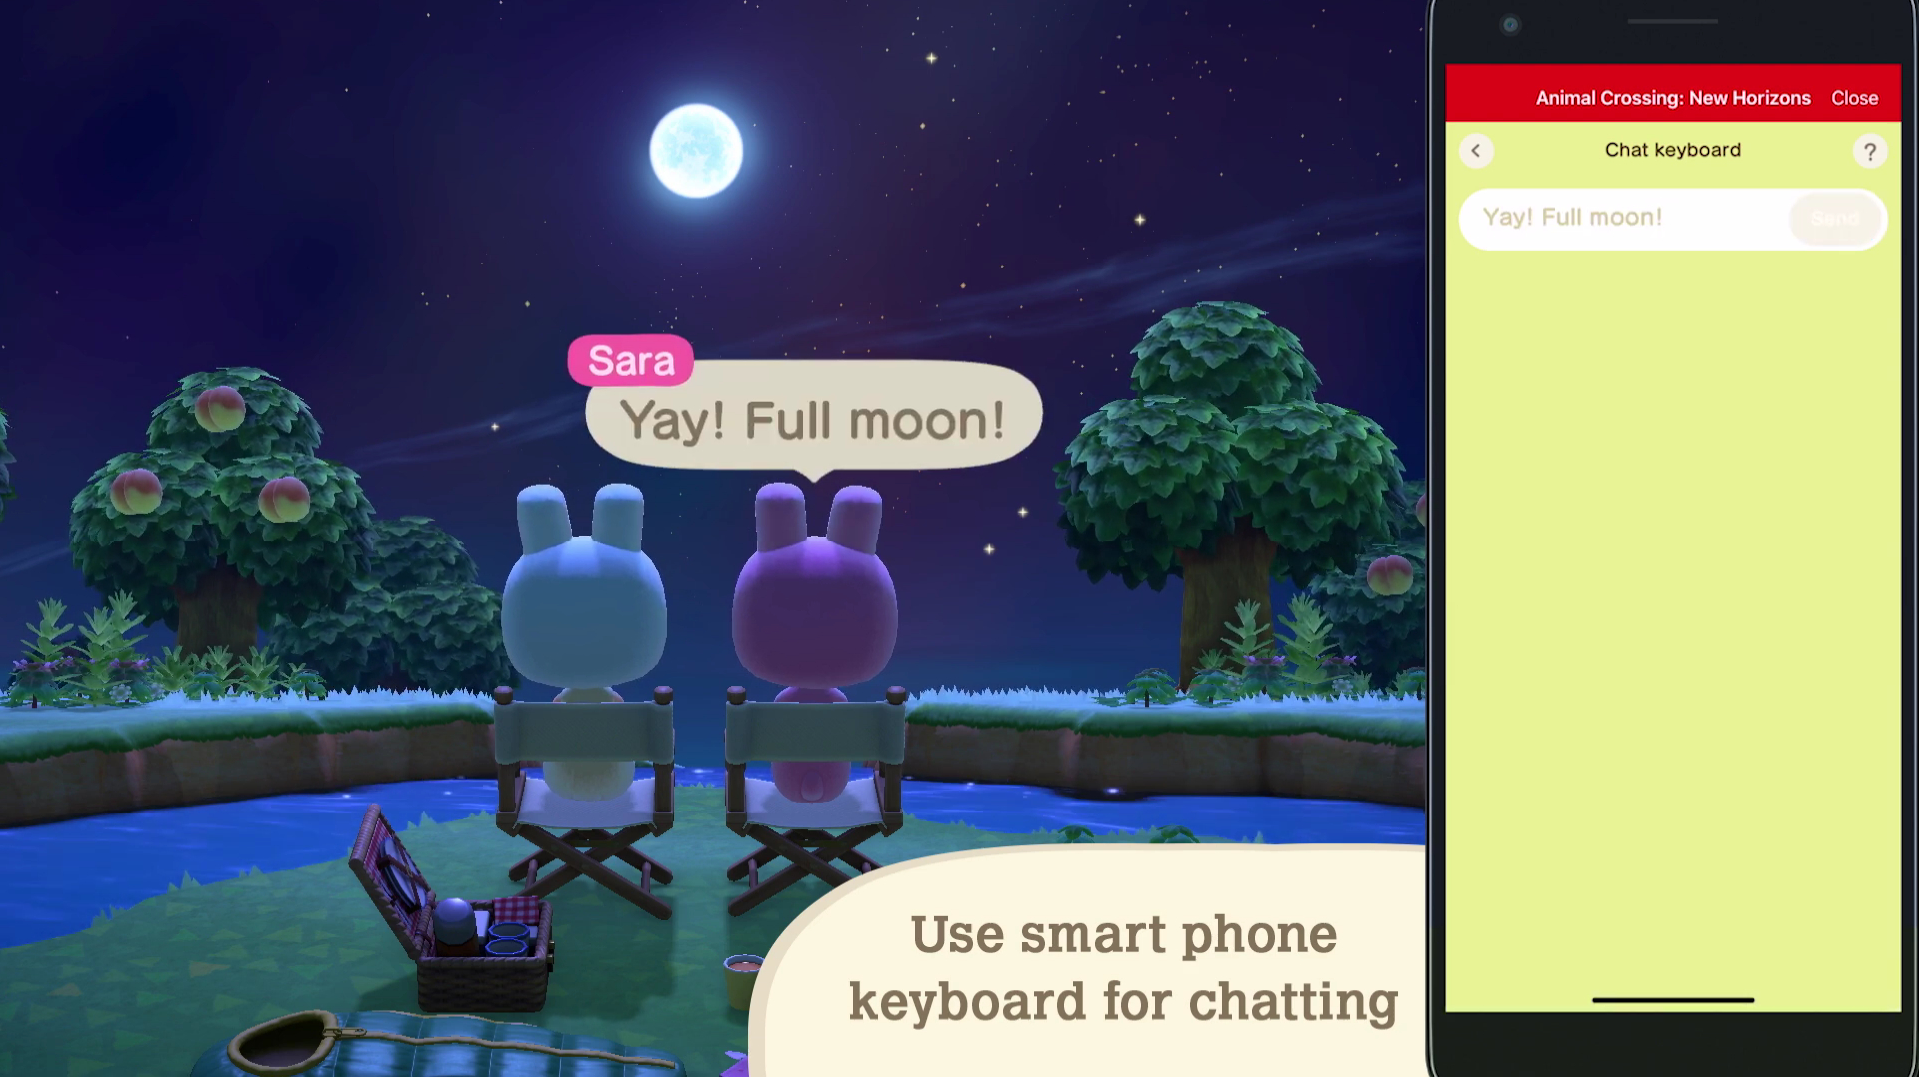 Animal Crossing Chat